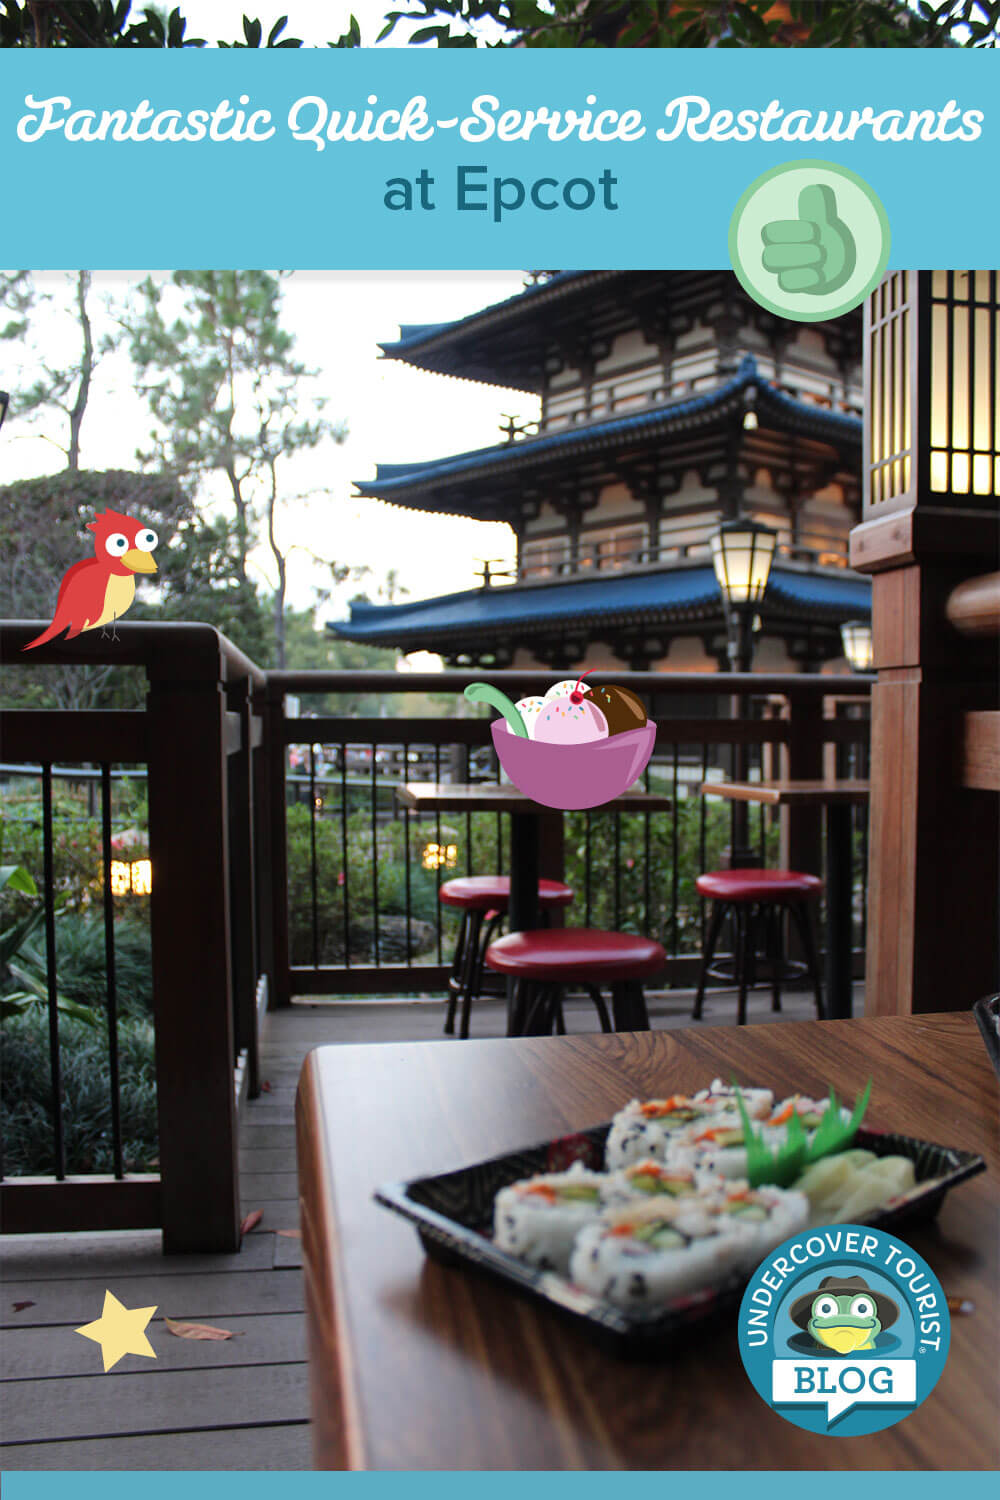 5 Fantastic Quick-Service Restaurants at Epcot